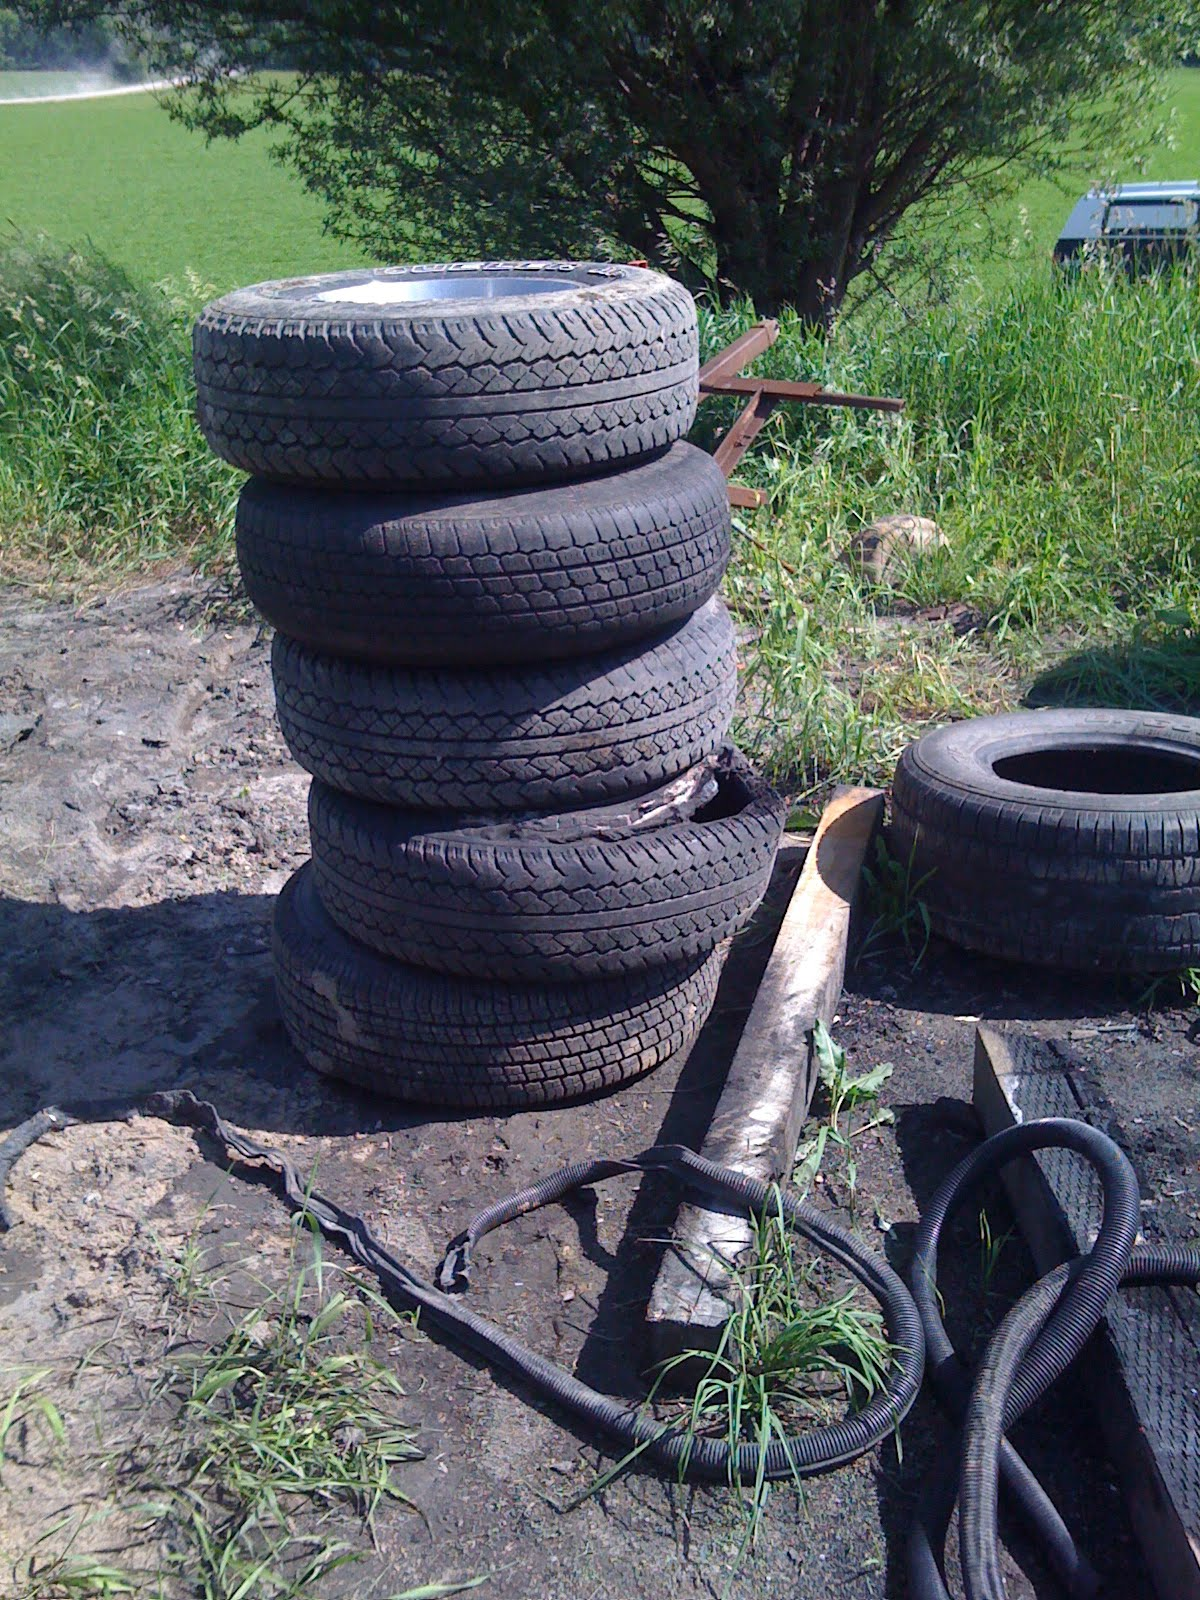 HICK CHIC: I have uncovered the breeding grounds of the SCRAP TIRES!